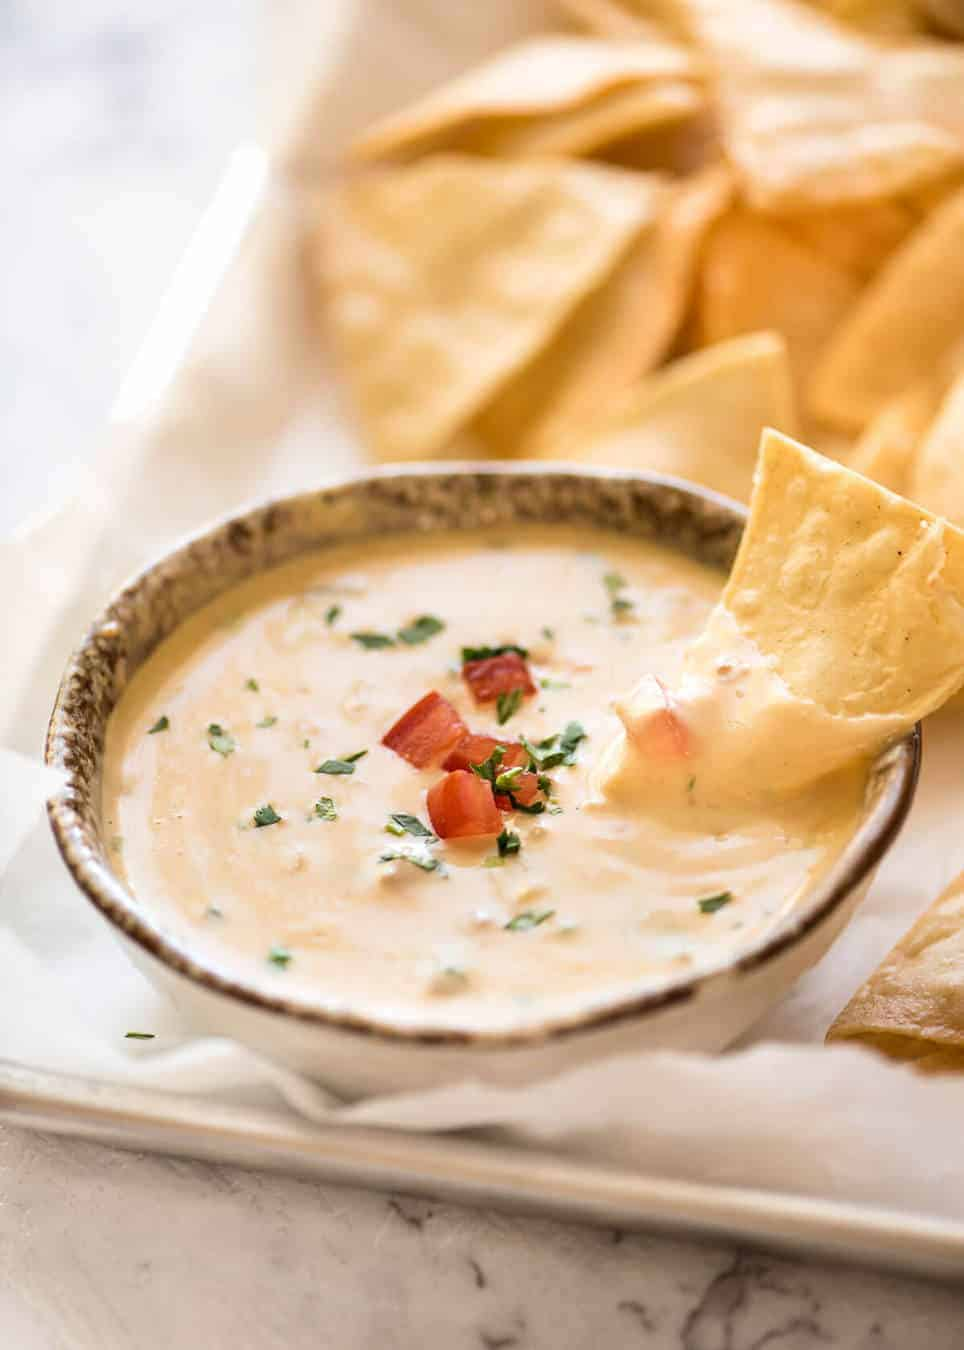 Code cracked: Queso Dip made with real cheese that's ultra silky even when it cools. recipetineats.com